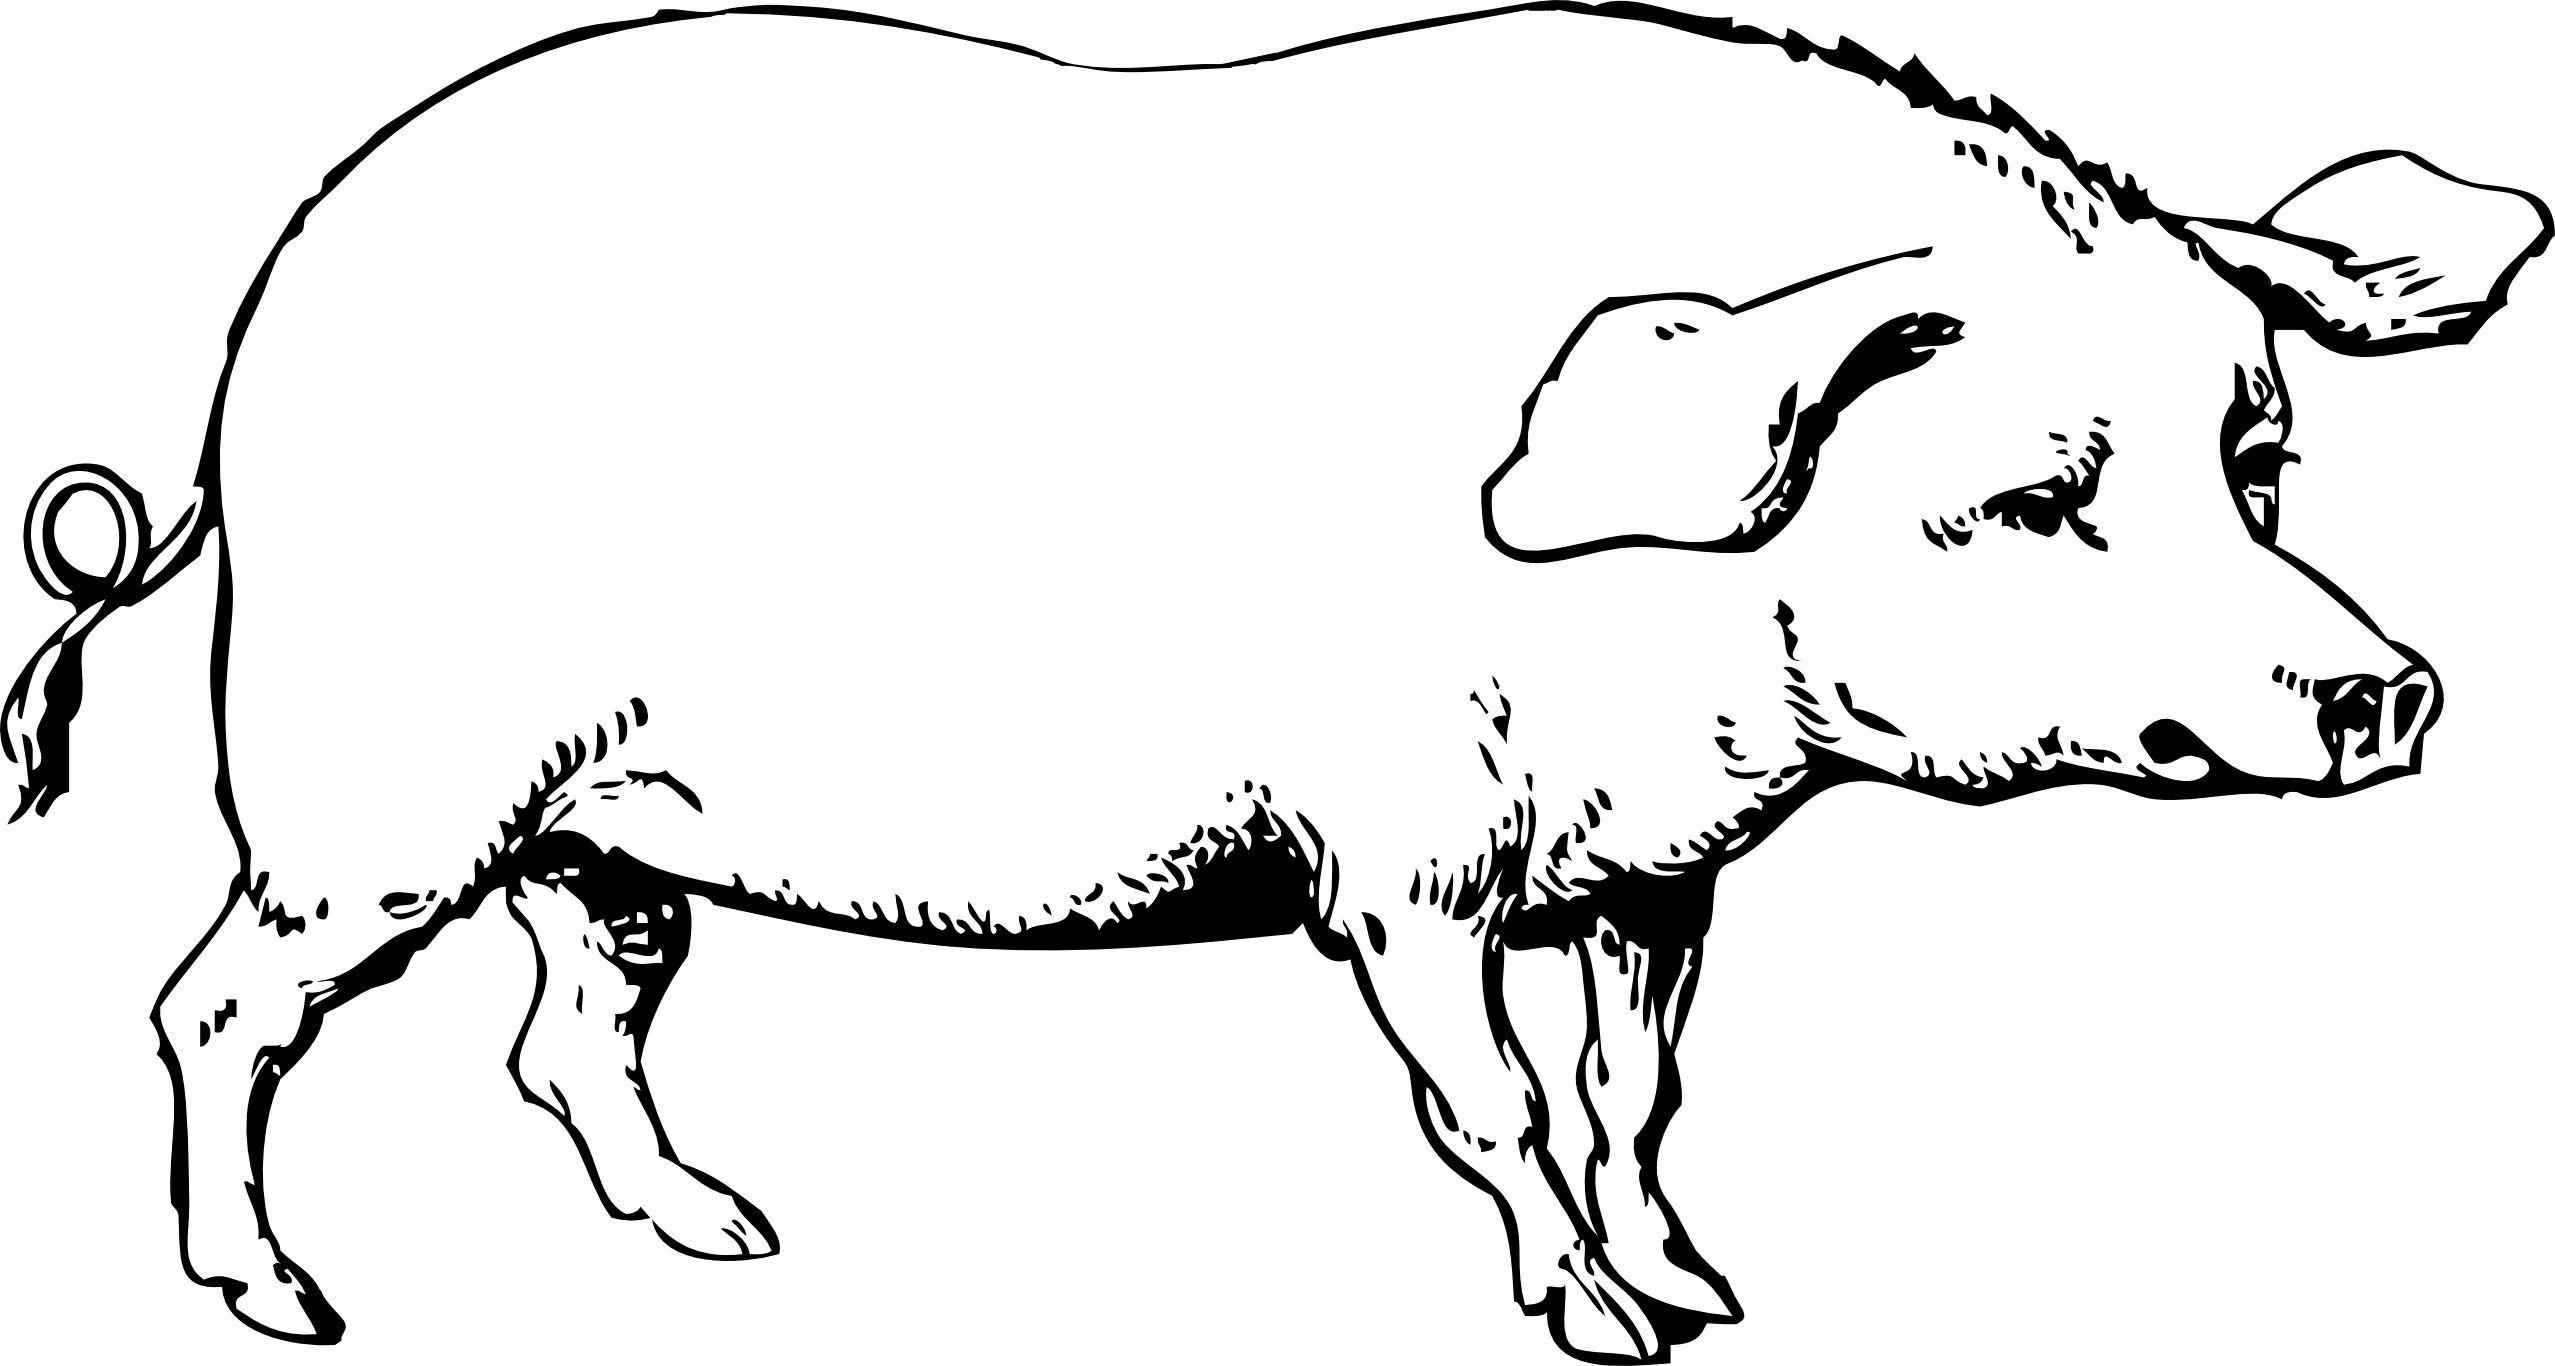 Line Drawing Of A Pig Face : Hog clipart panda free images